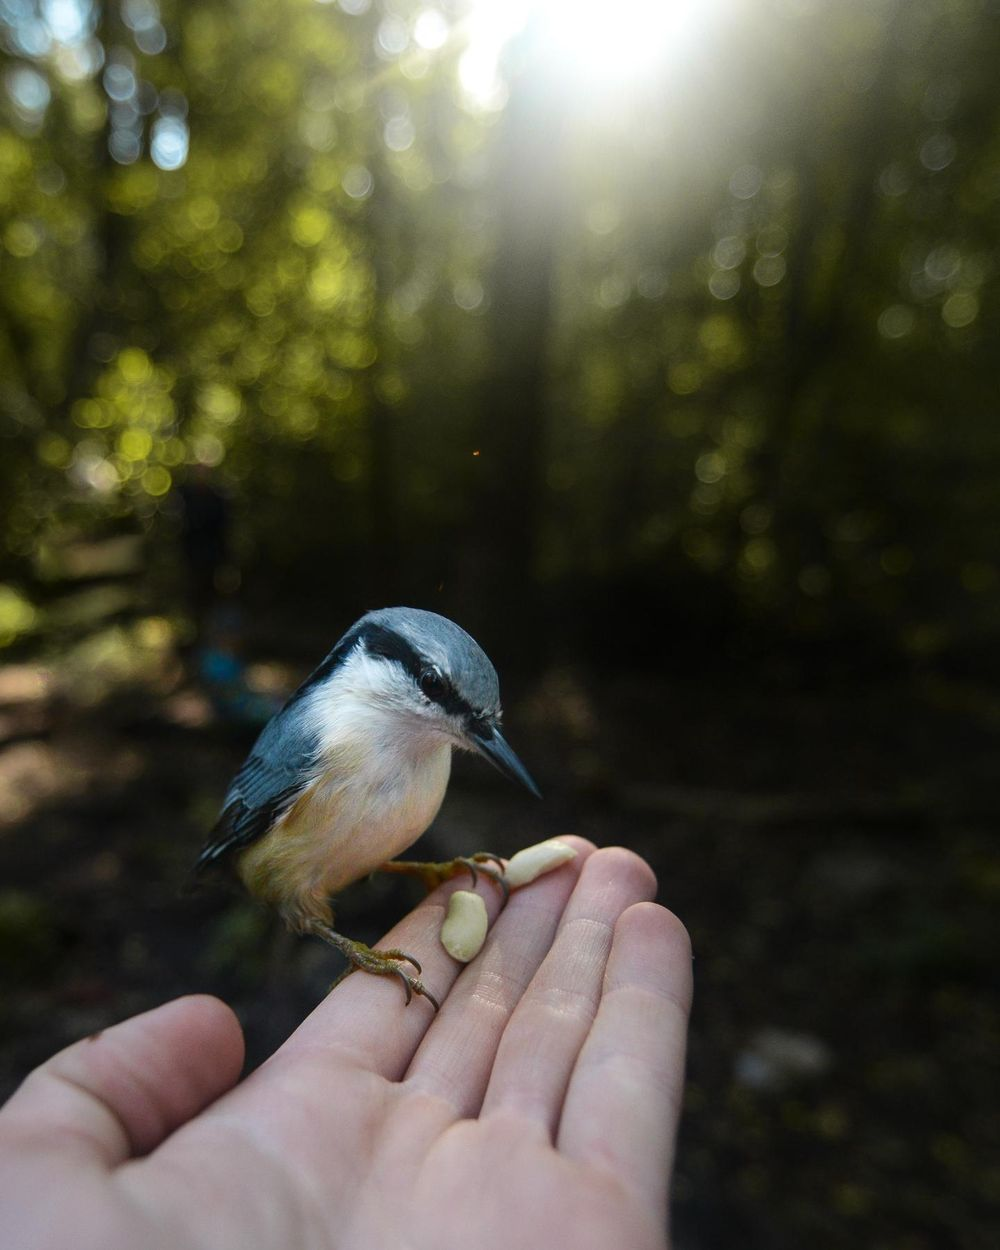 Getting up close with the animals. - image 6 - student project